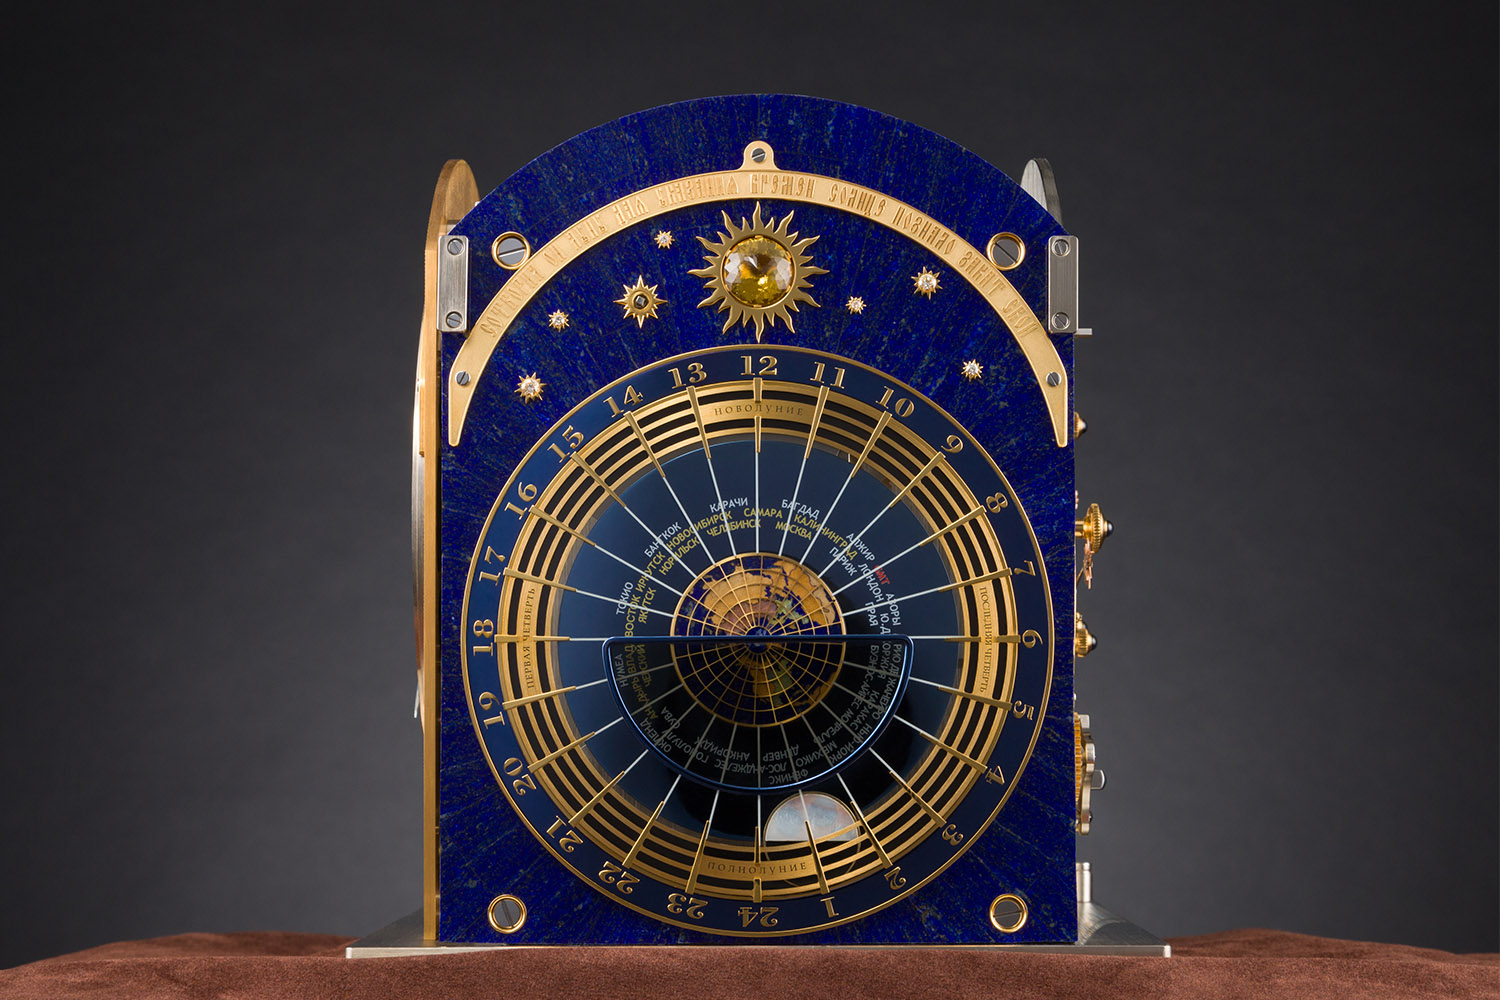 konstantin-chaykin-moscow-comptus-easter-clock-most-complicated-clock-ever-made-in-russia-7